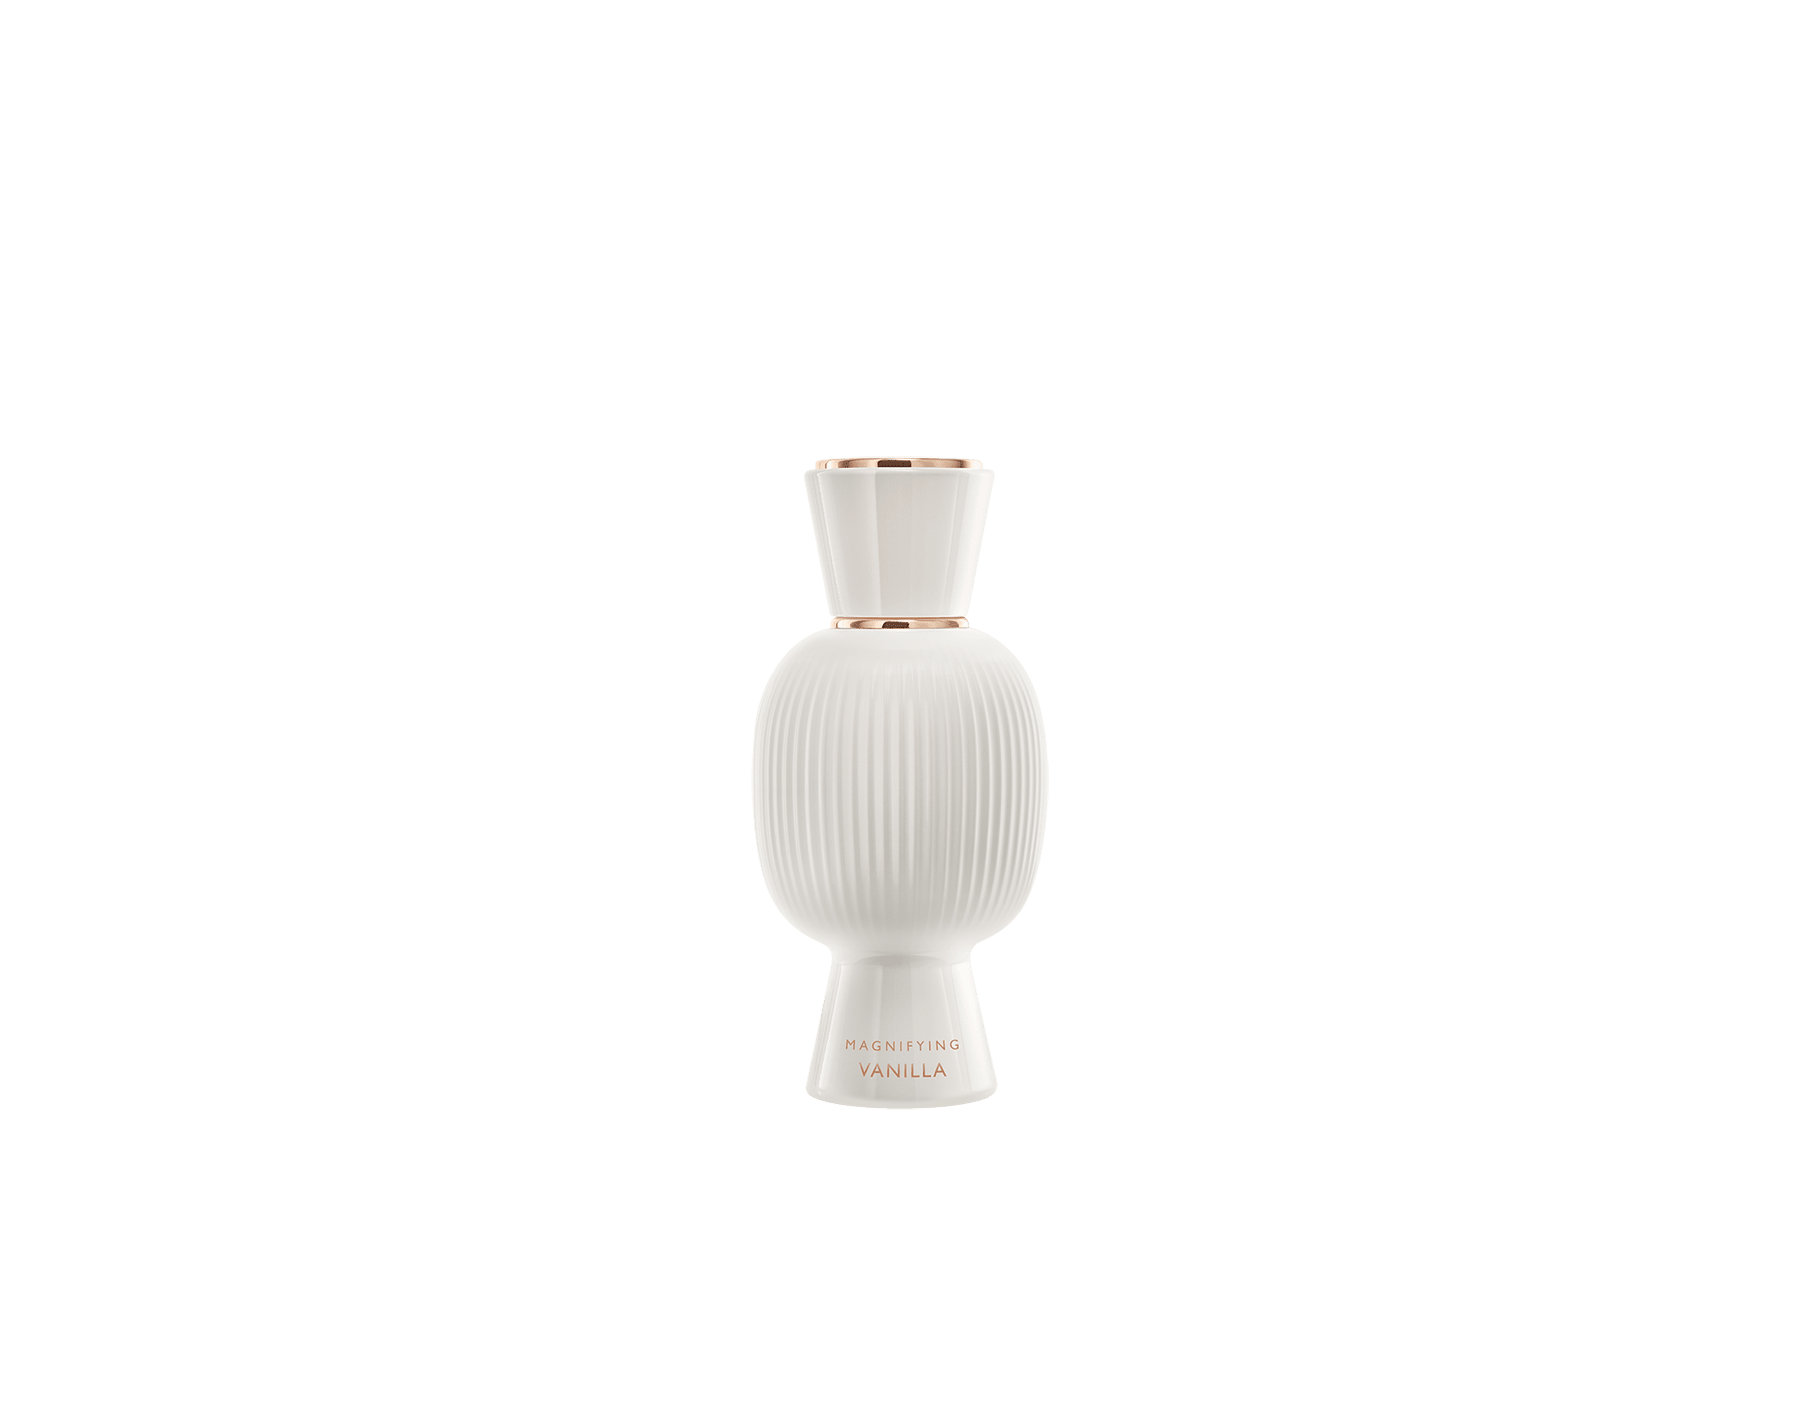 An exclusive perfume set, as bold and unique as you. The festive chypre Fantasia Veneta Allegra Eau de Parfum blends with the addictive aroma of the Magnifying Vanilla Essence, creating an irresistible personalised women's perfume. Perfume-Set-Fantasia-Veneta-Eau-de-Parfum-and-Vanilla-Magnifying image 3